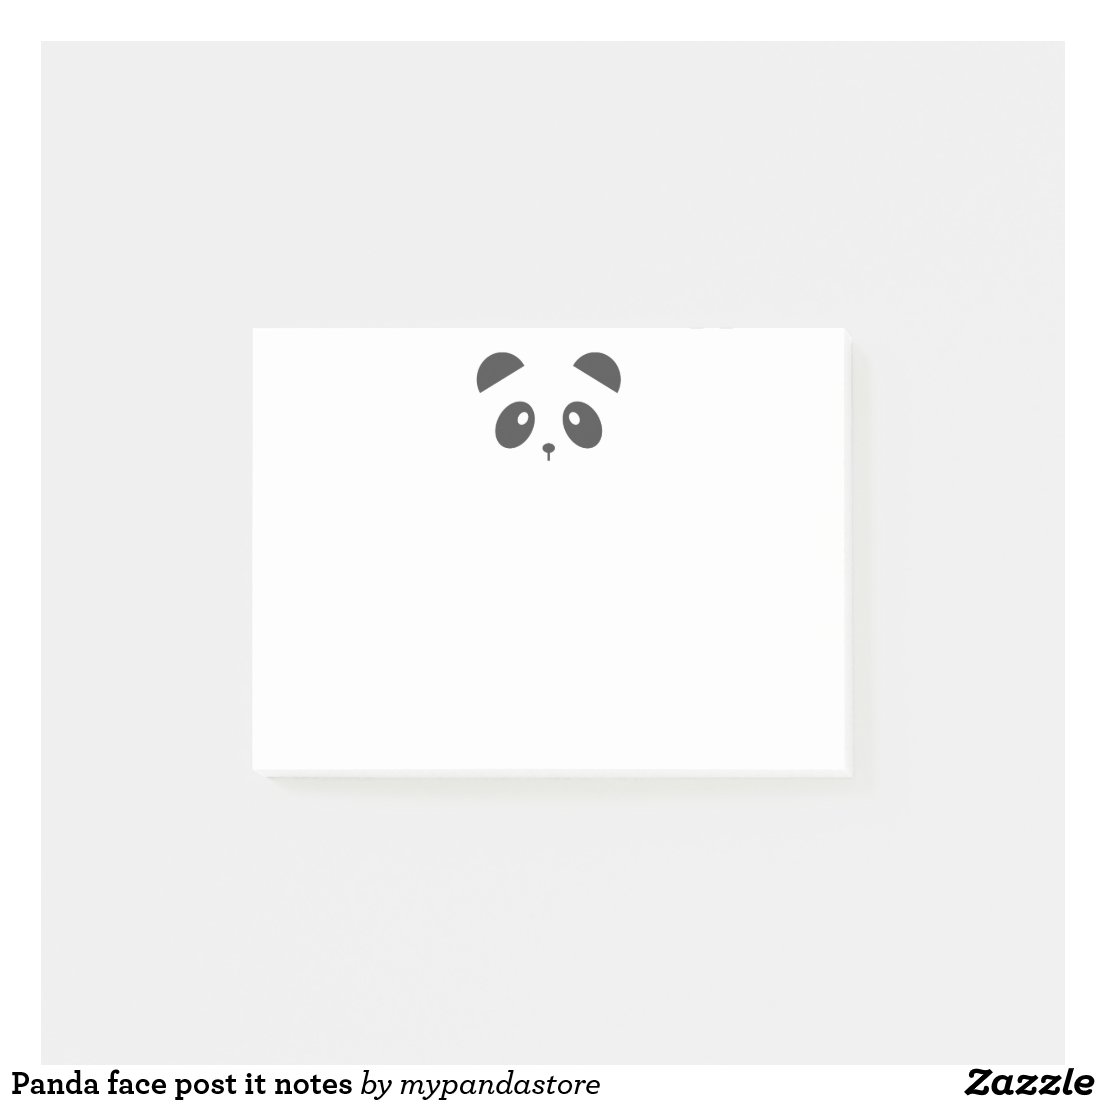 Panda face post it notes